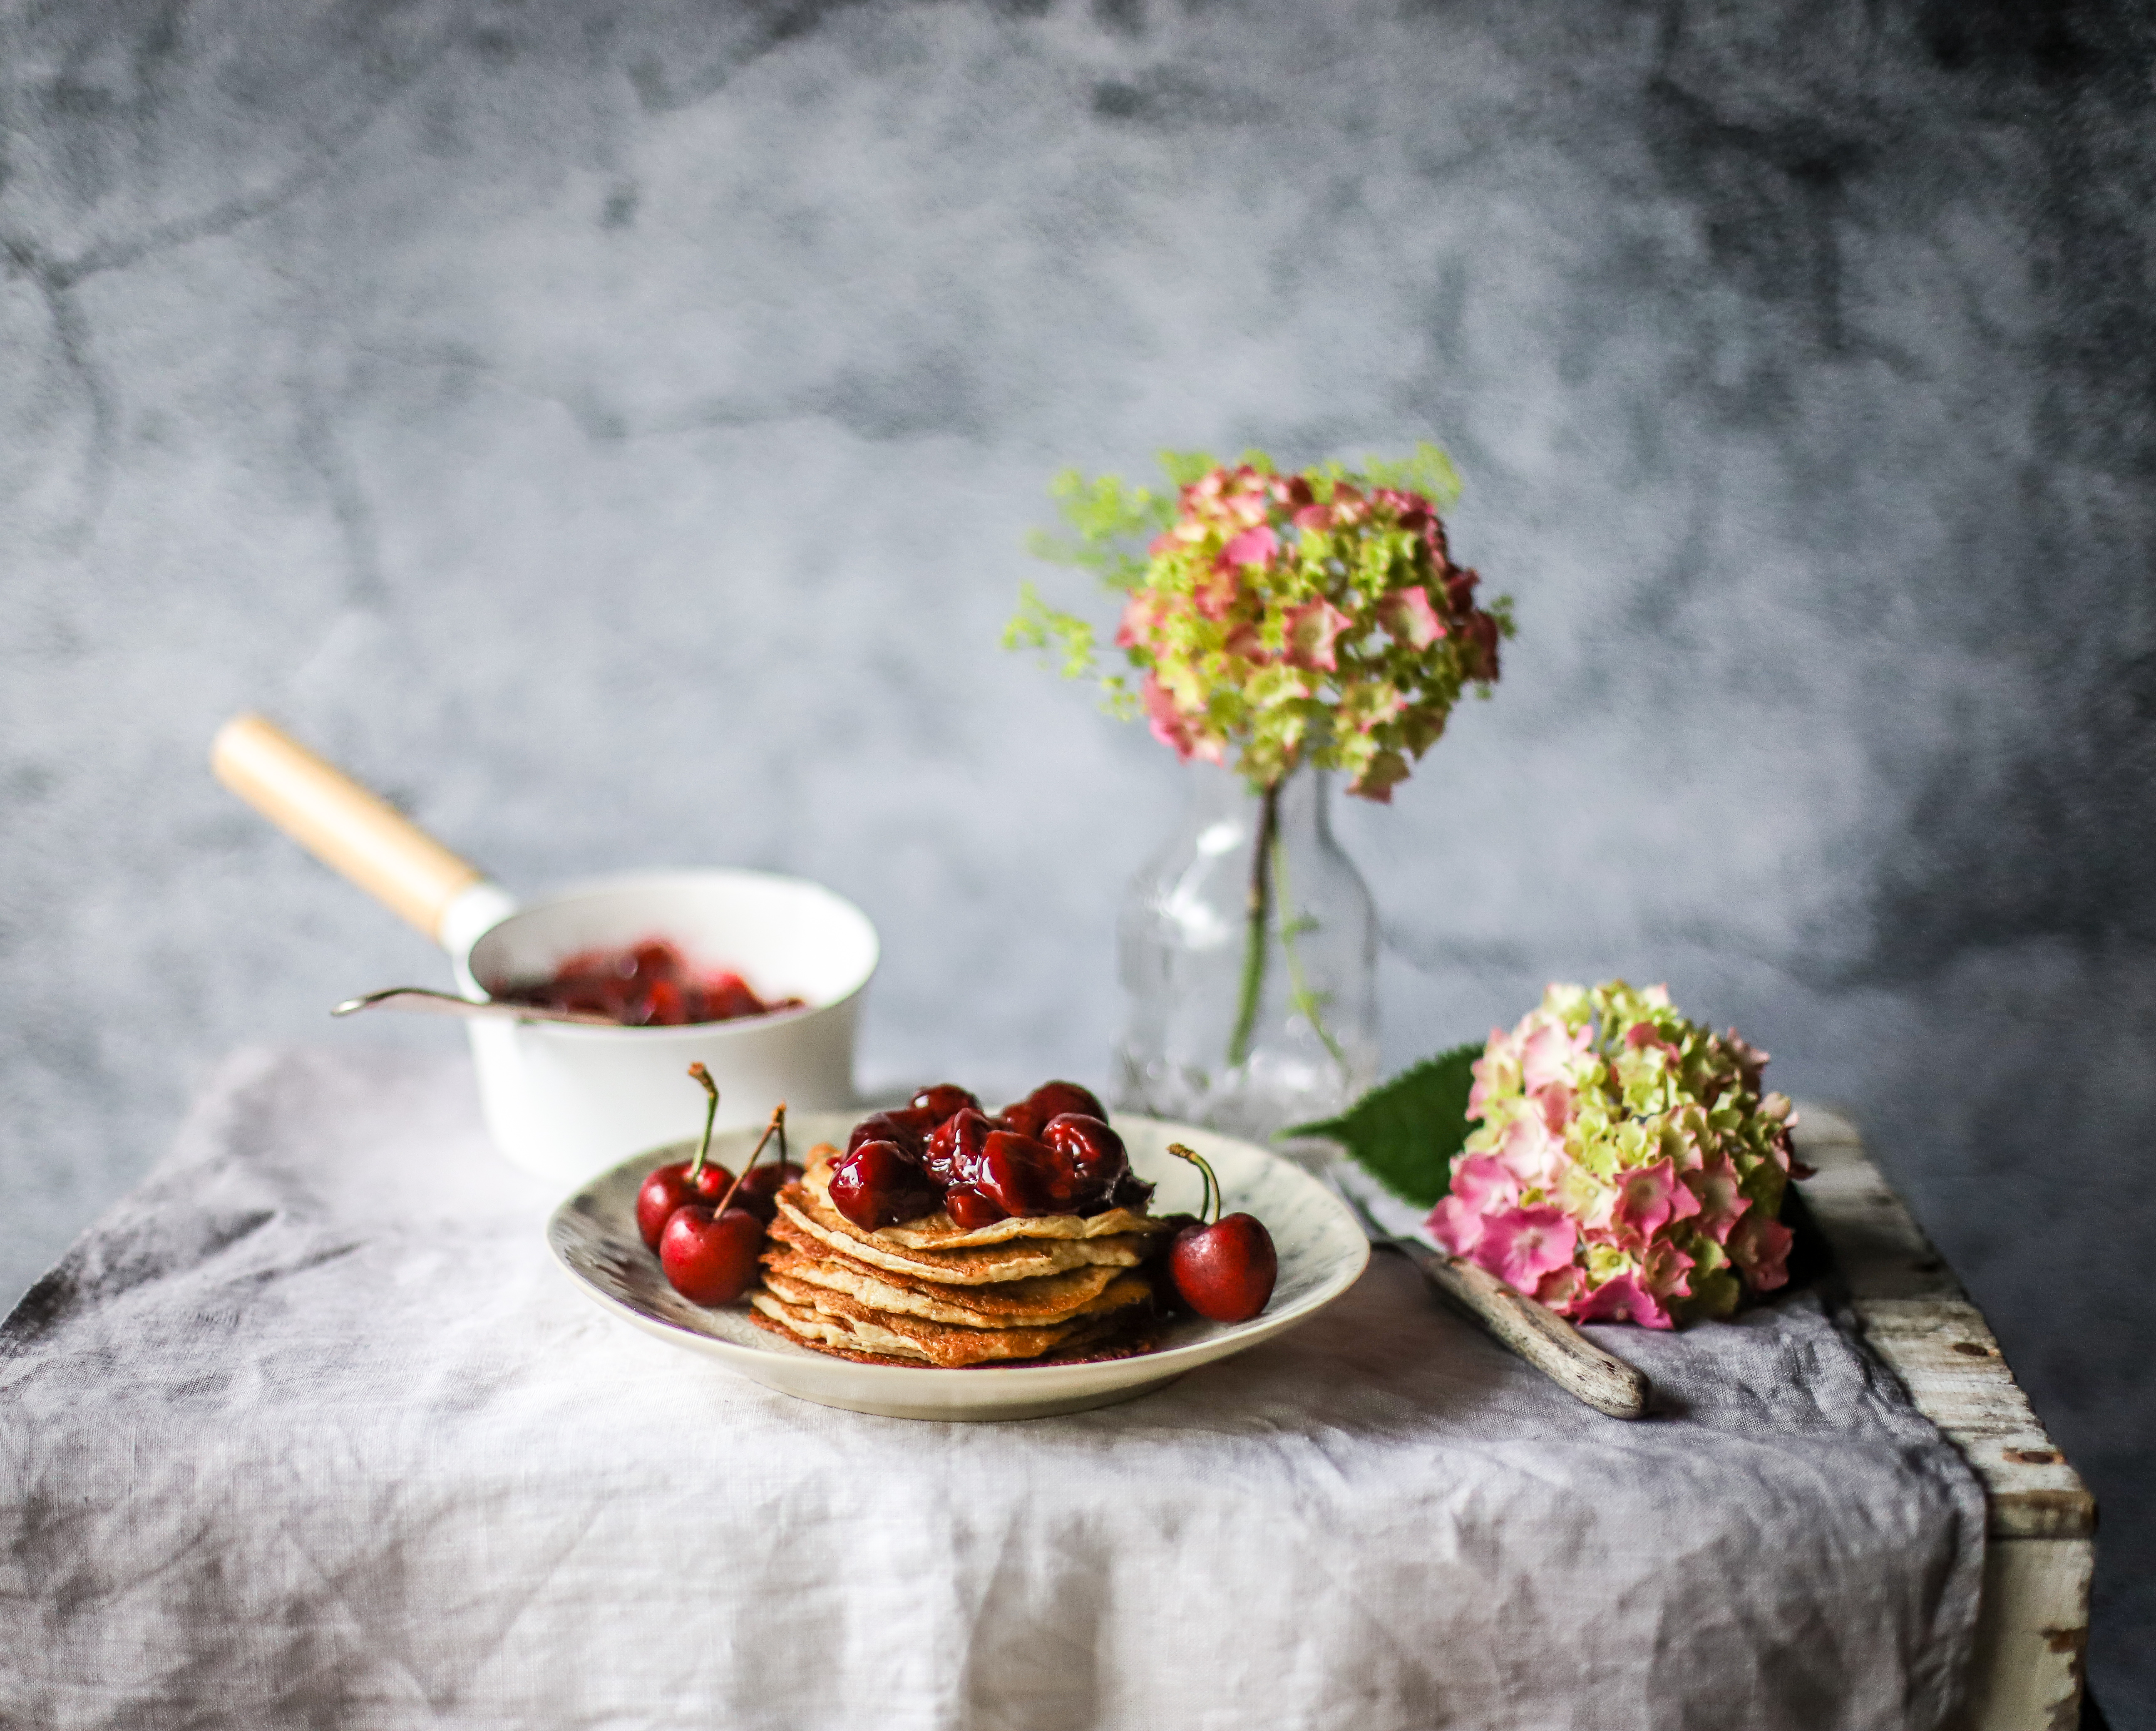 Make nutritious, gut-friendly probiotic pancakes with an easy fresh cherry sauce - that can double as a pie filling! - for a delicious weekend family breakfast or dessert. #breakfast #pancakes #oats #guthealth #cherries #kefir